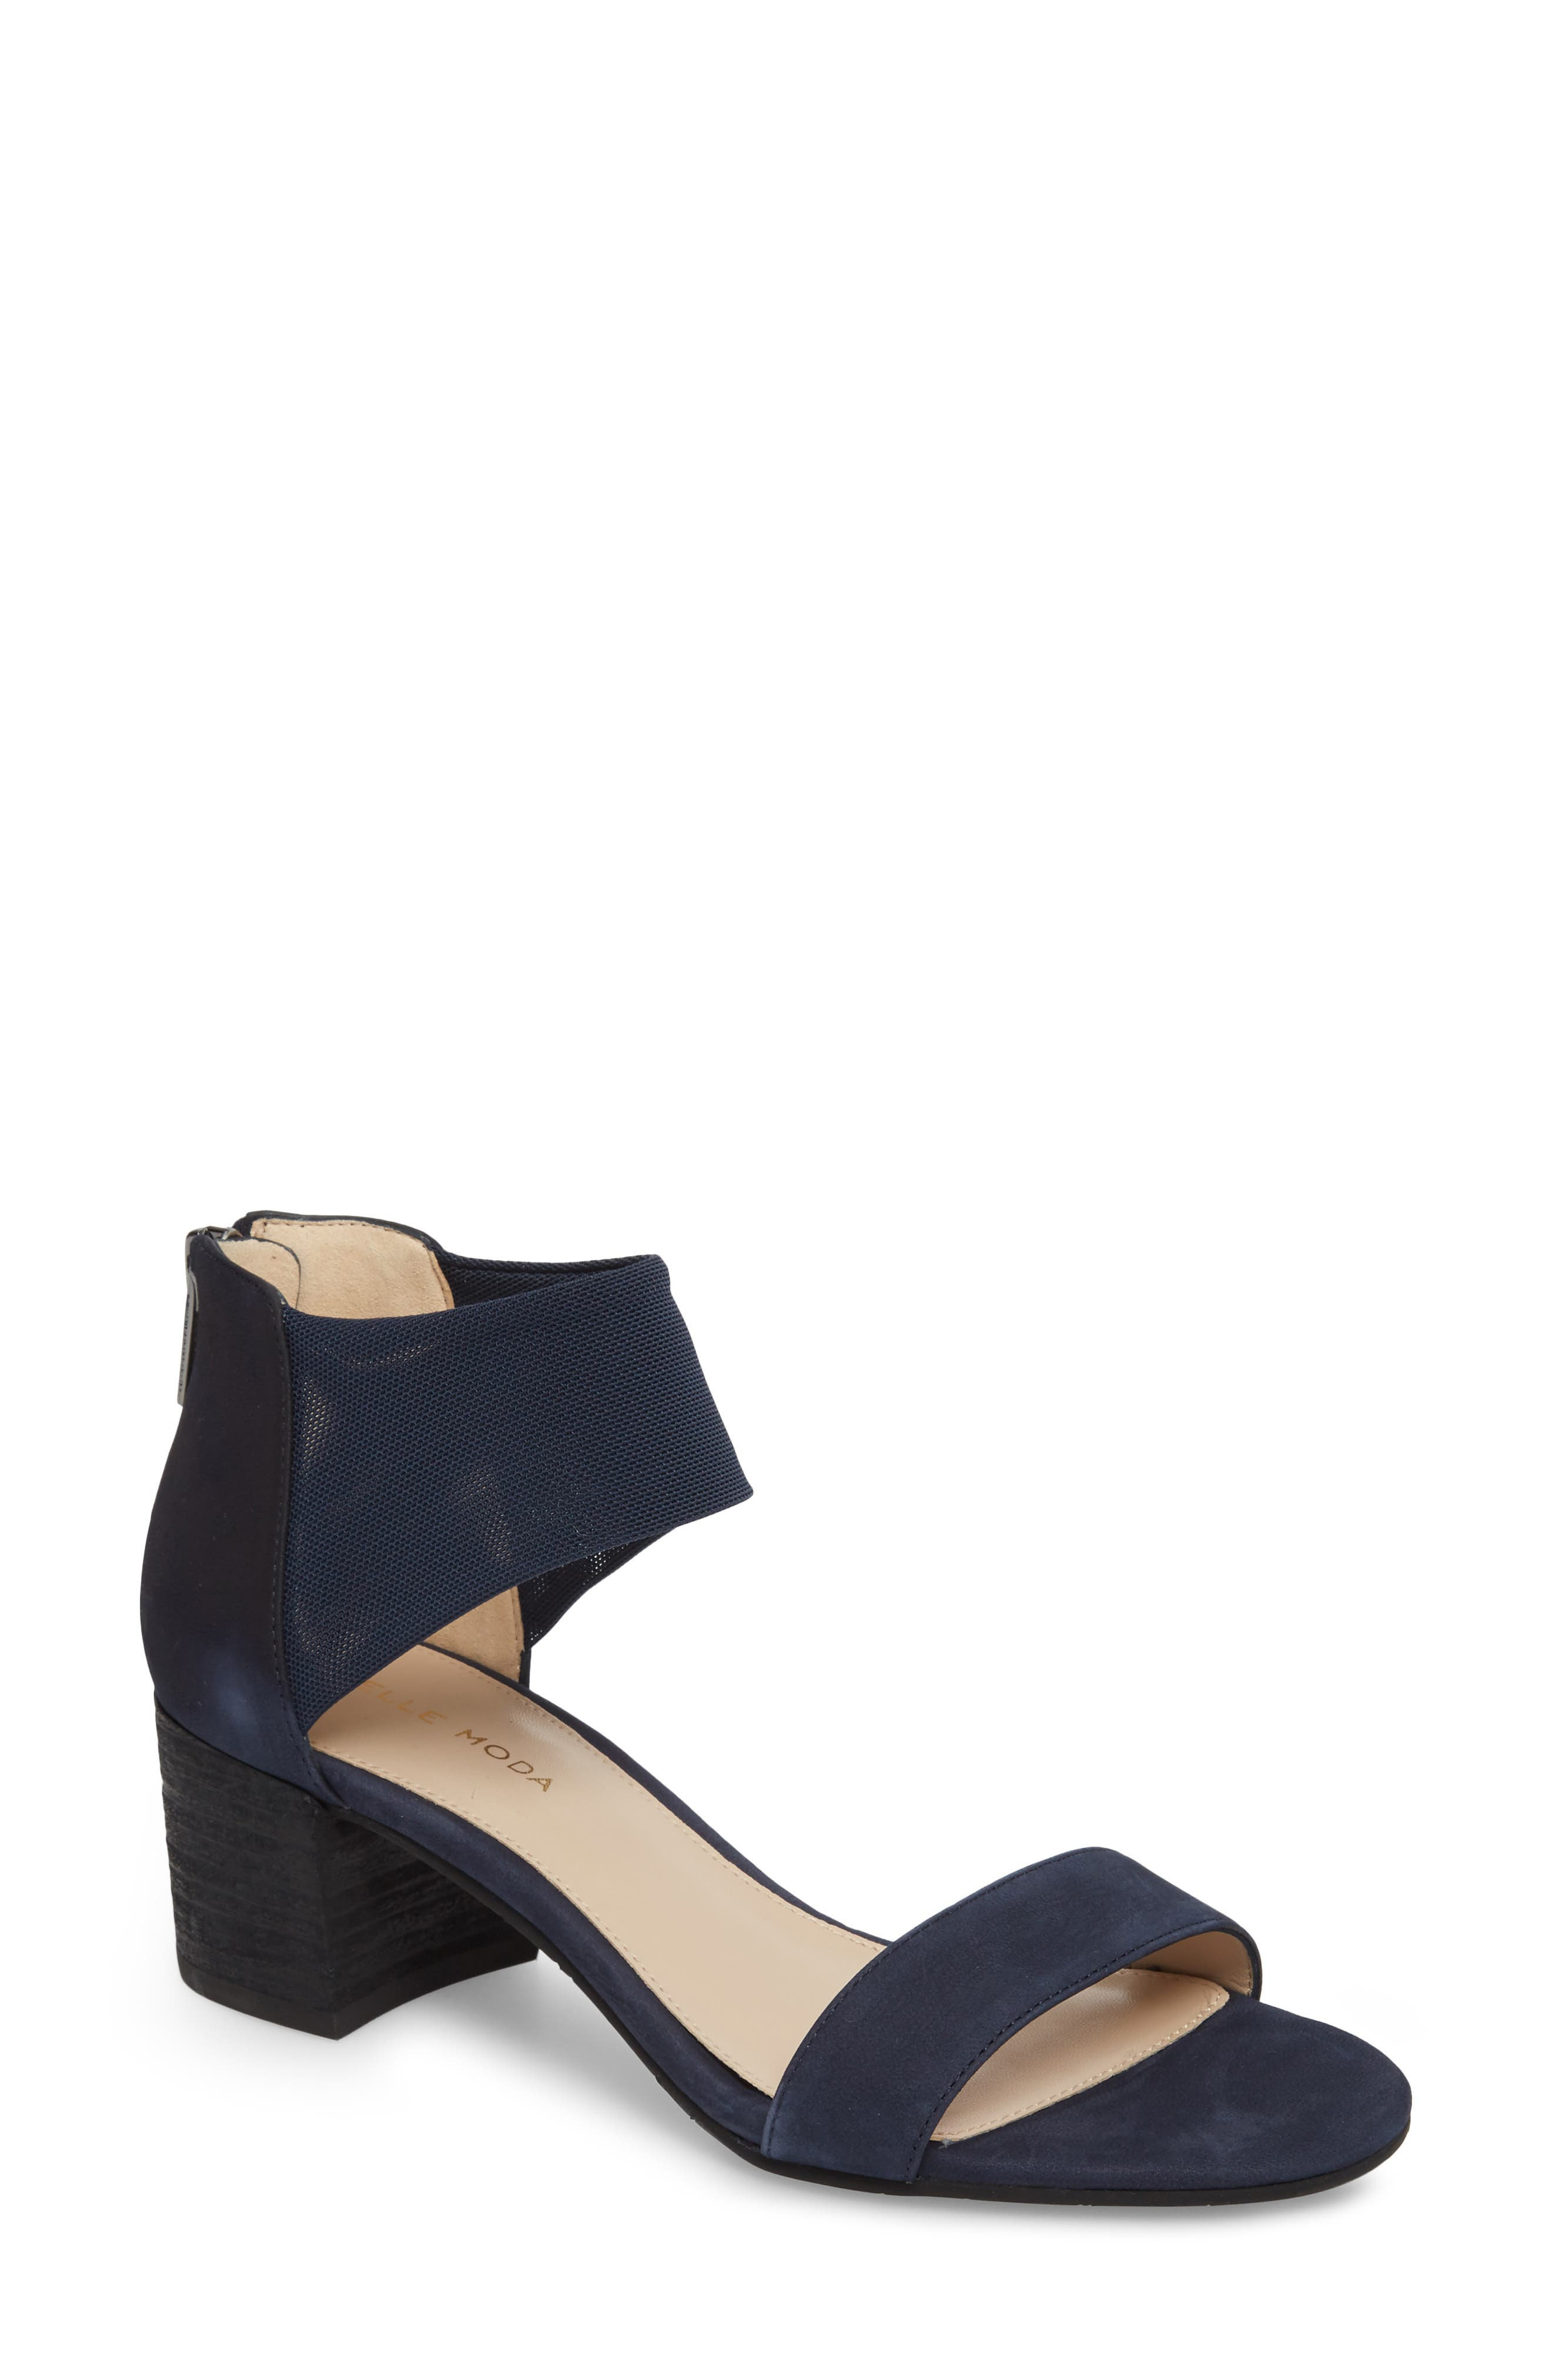 Alden Mesh Strap Sandal,                             Main thumbnail 1, color,                             MIDNIGHT NUBUCK LEATHER